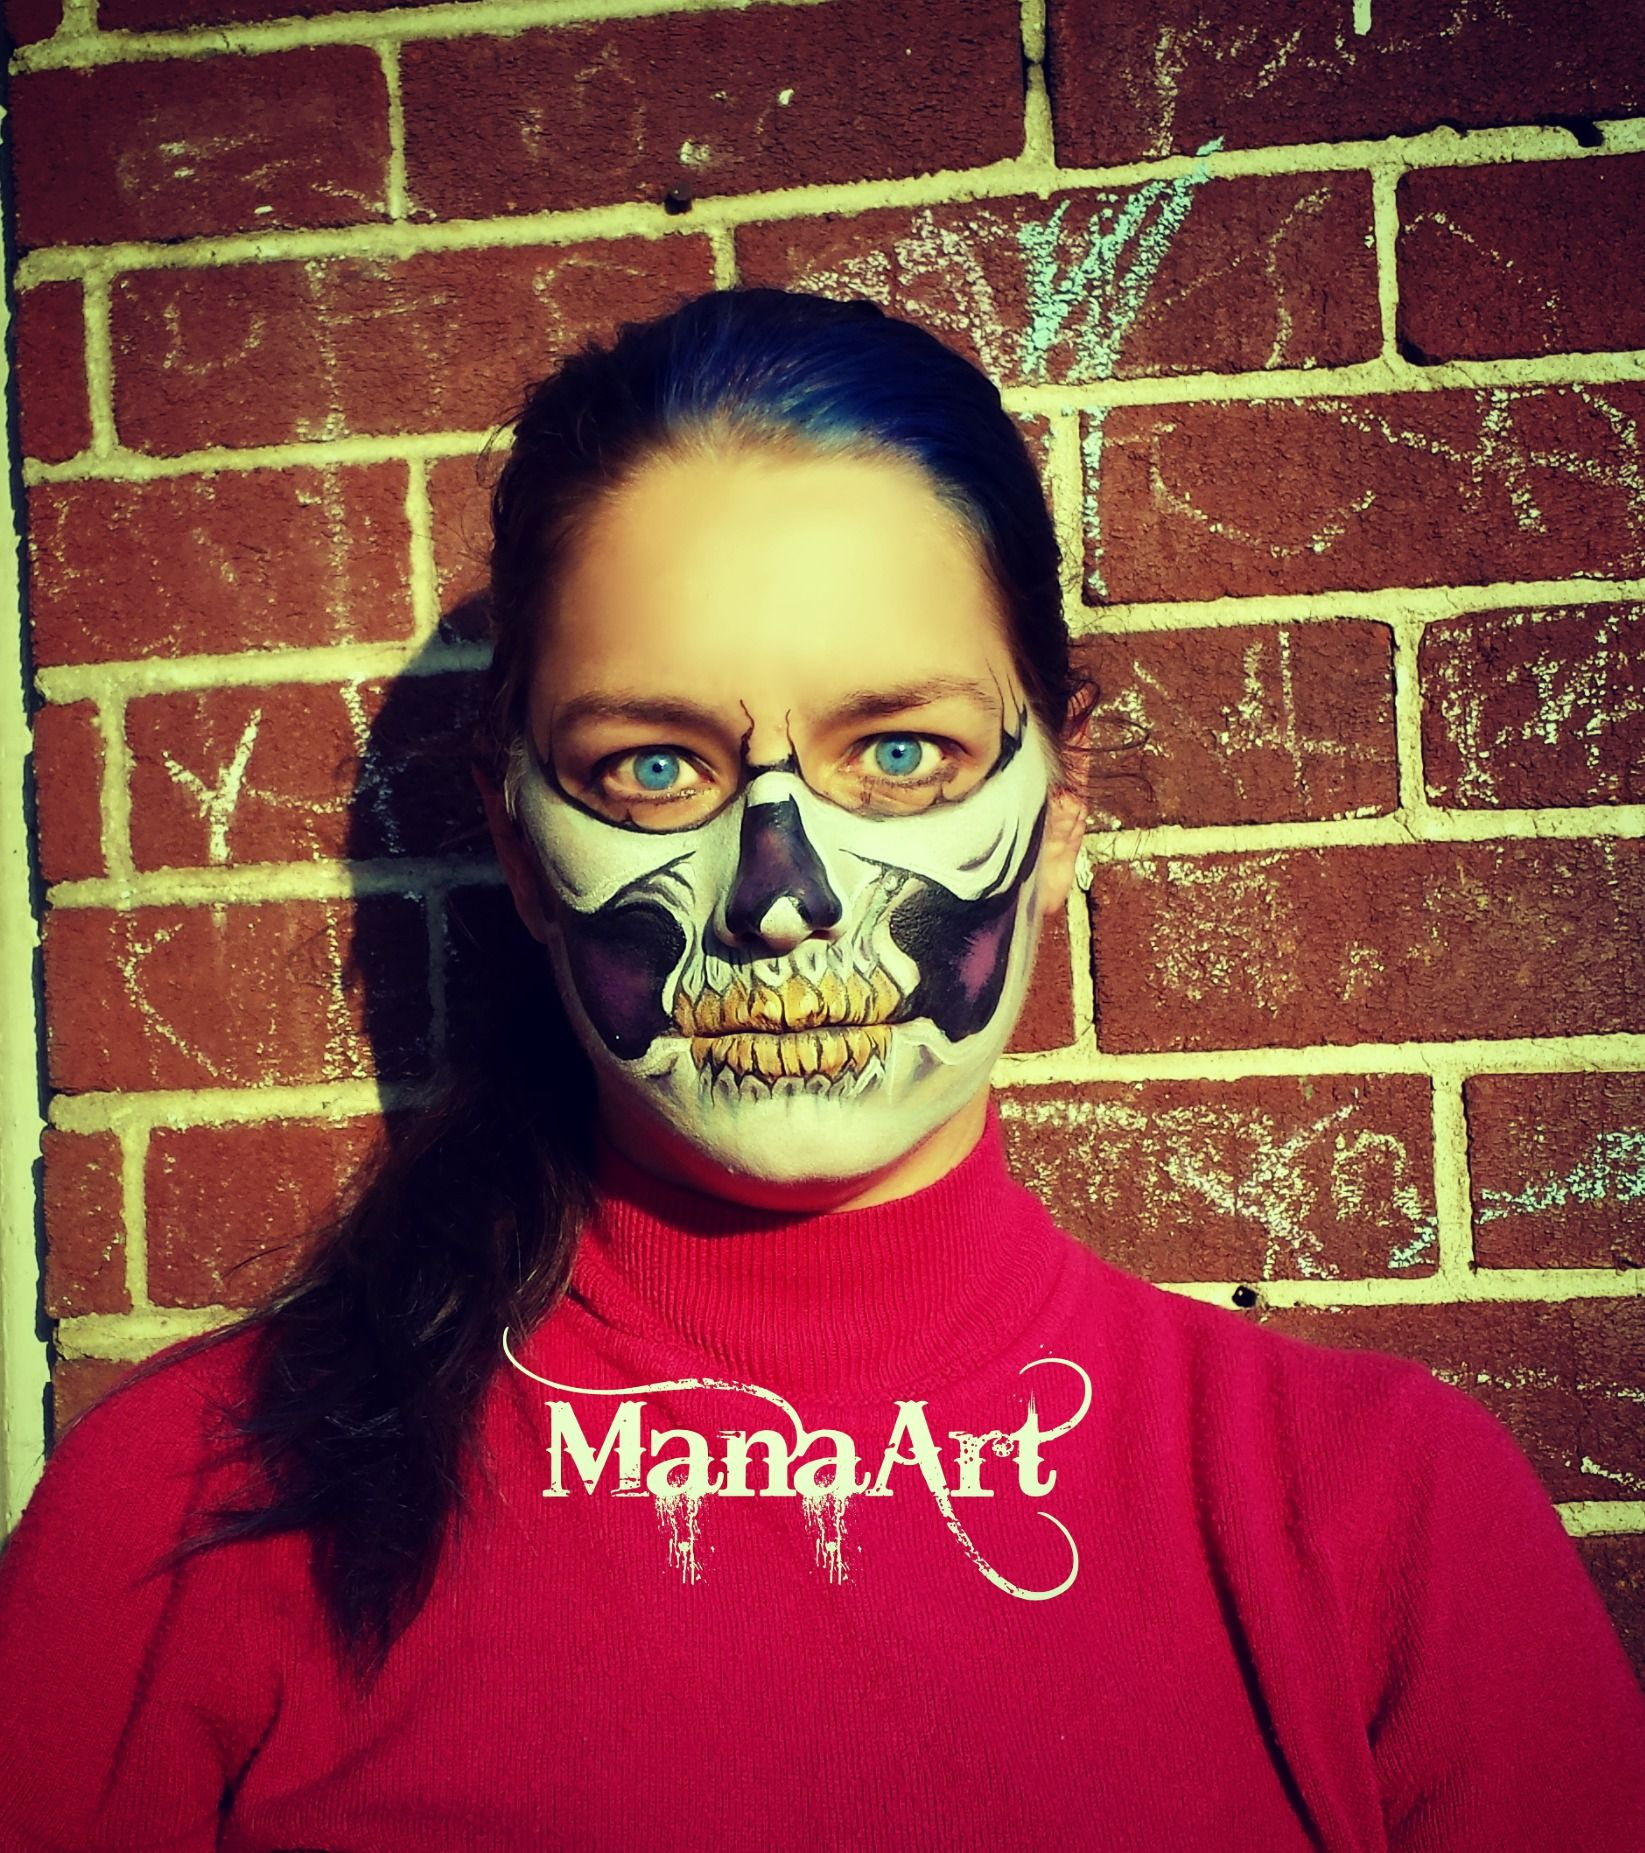 Half Skull Makeup and Face Paint ManaArtOnline.com ManaArt Face and Body Painting